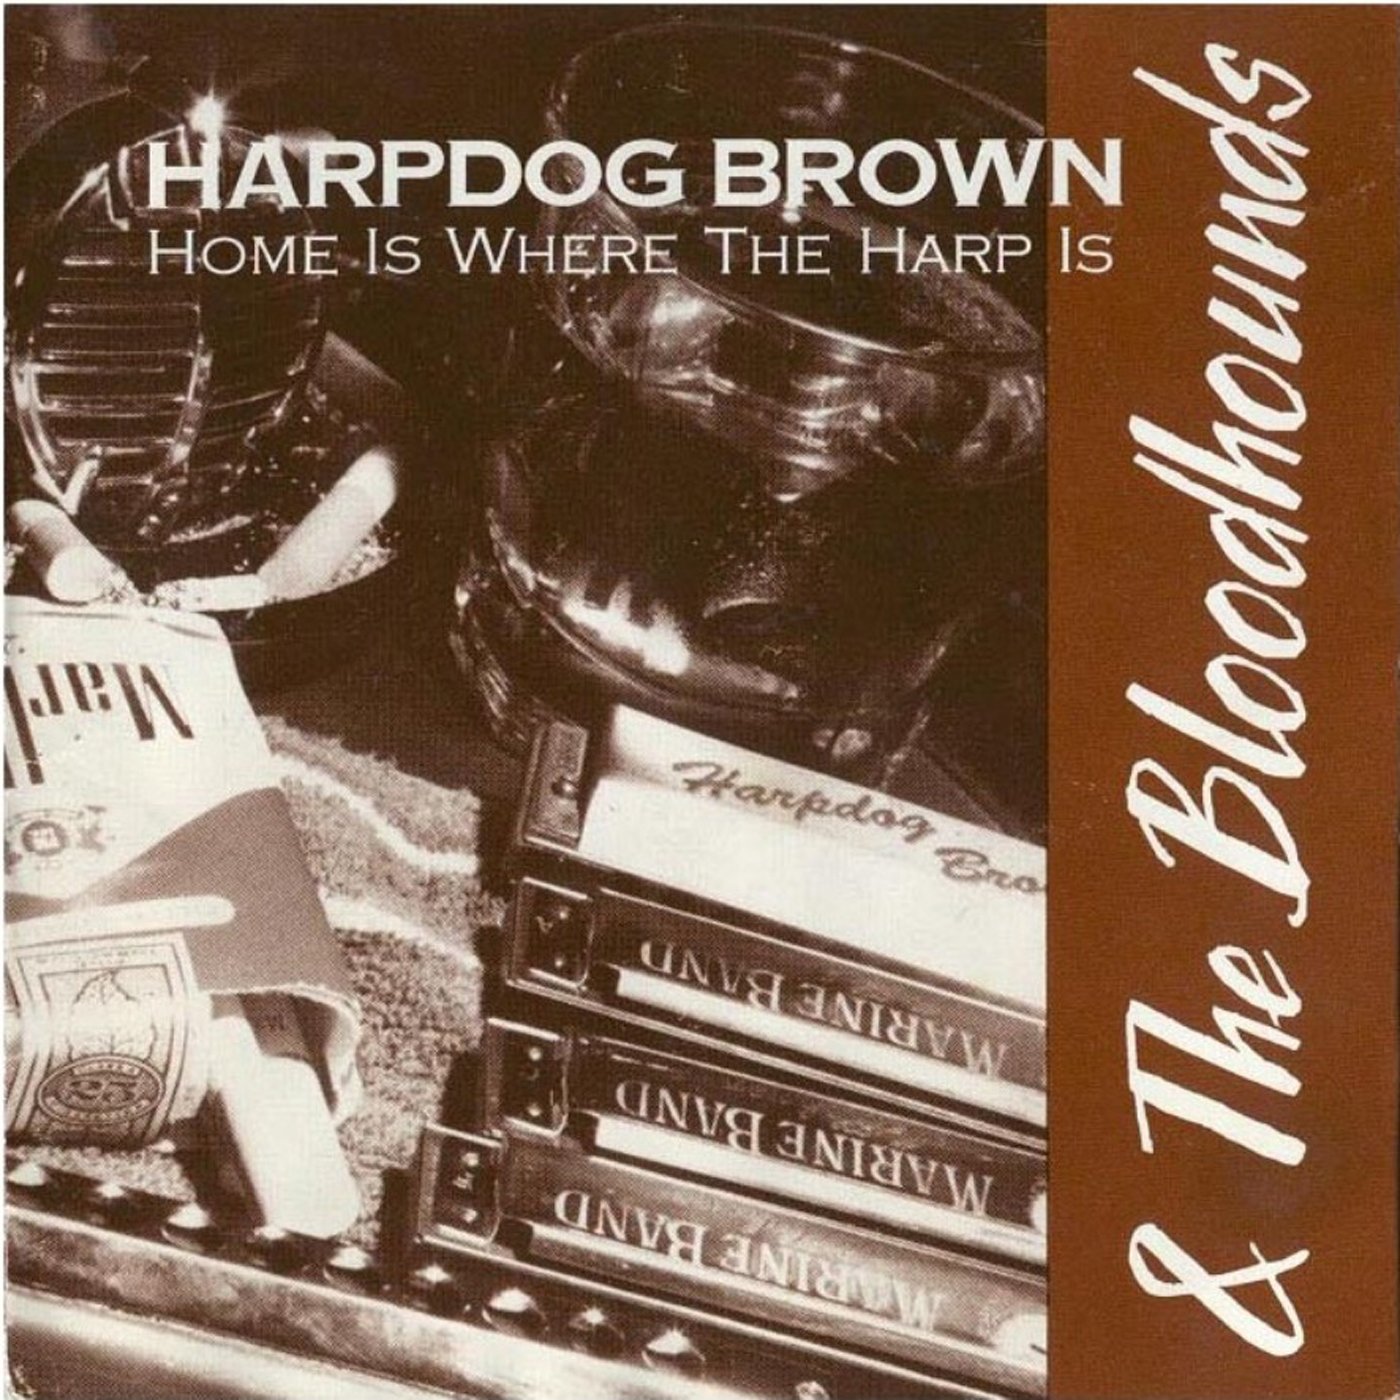 Home Is Where the Harp Is: Released in 1994